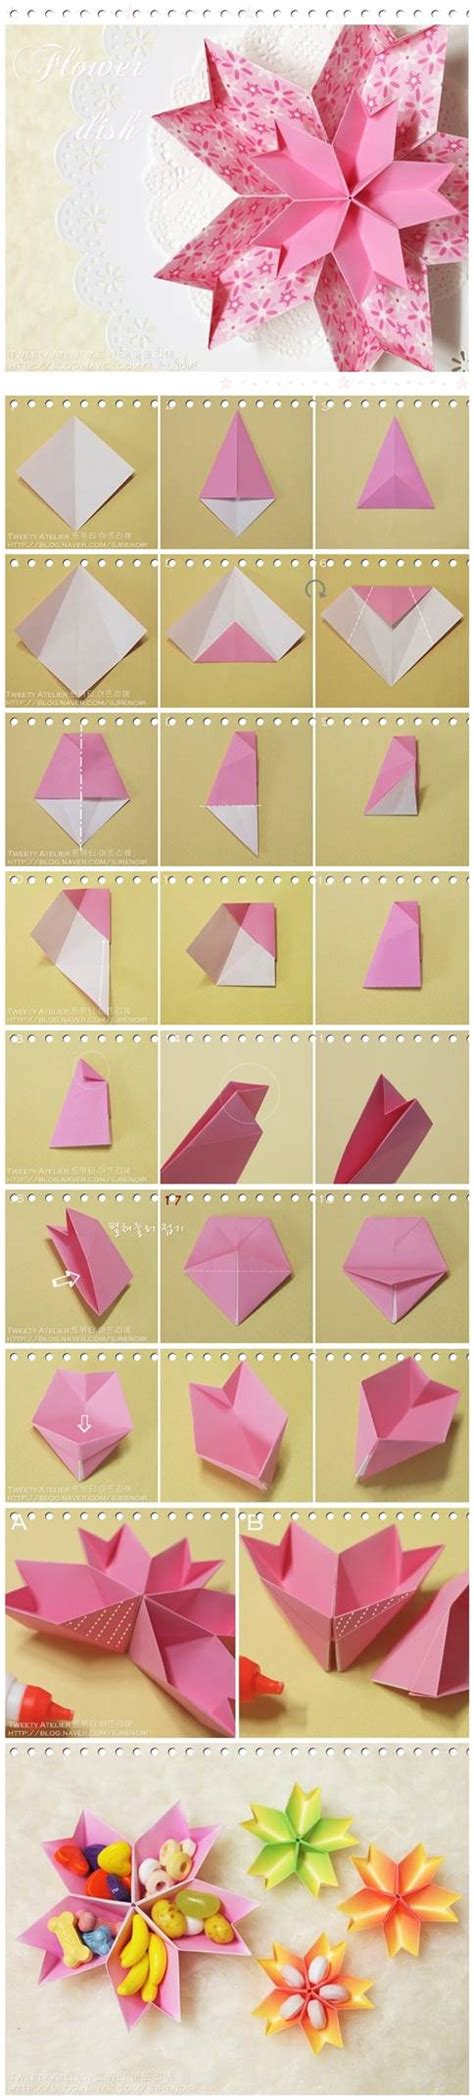 how to make paper flower dish step by step diy tutorial